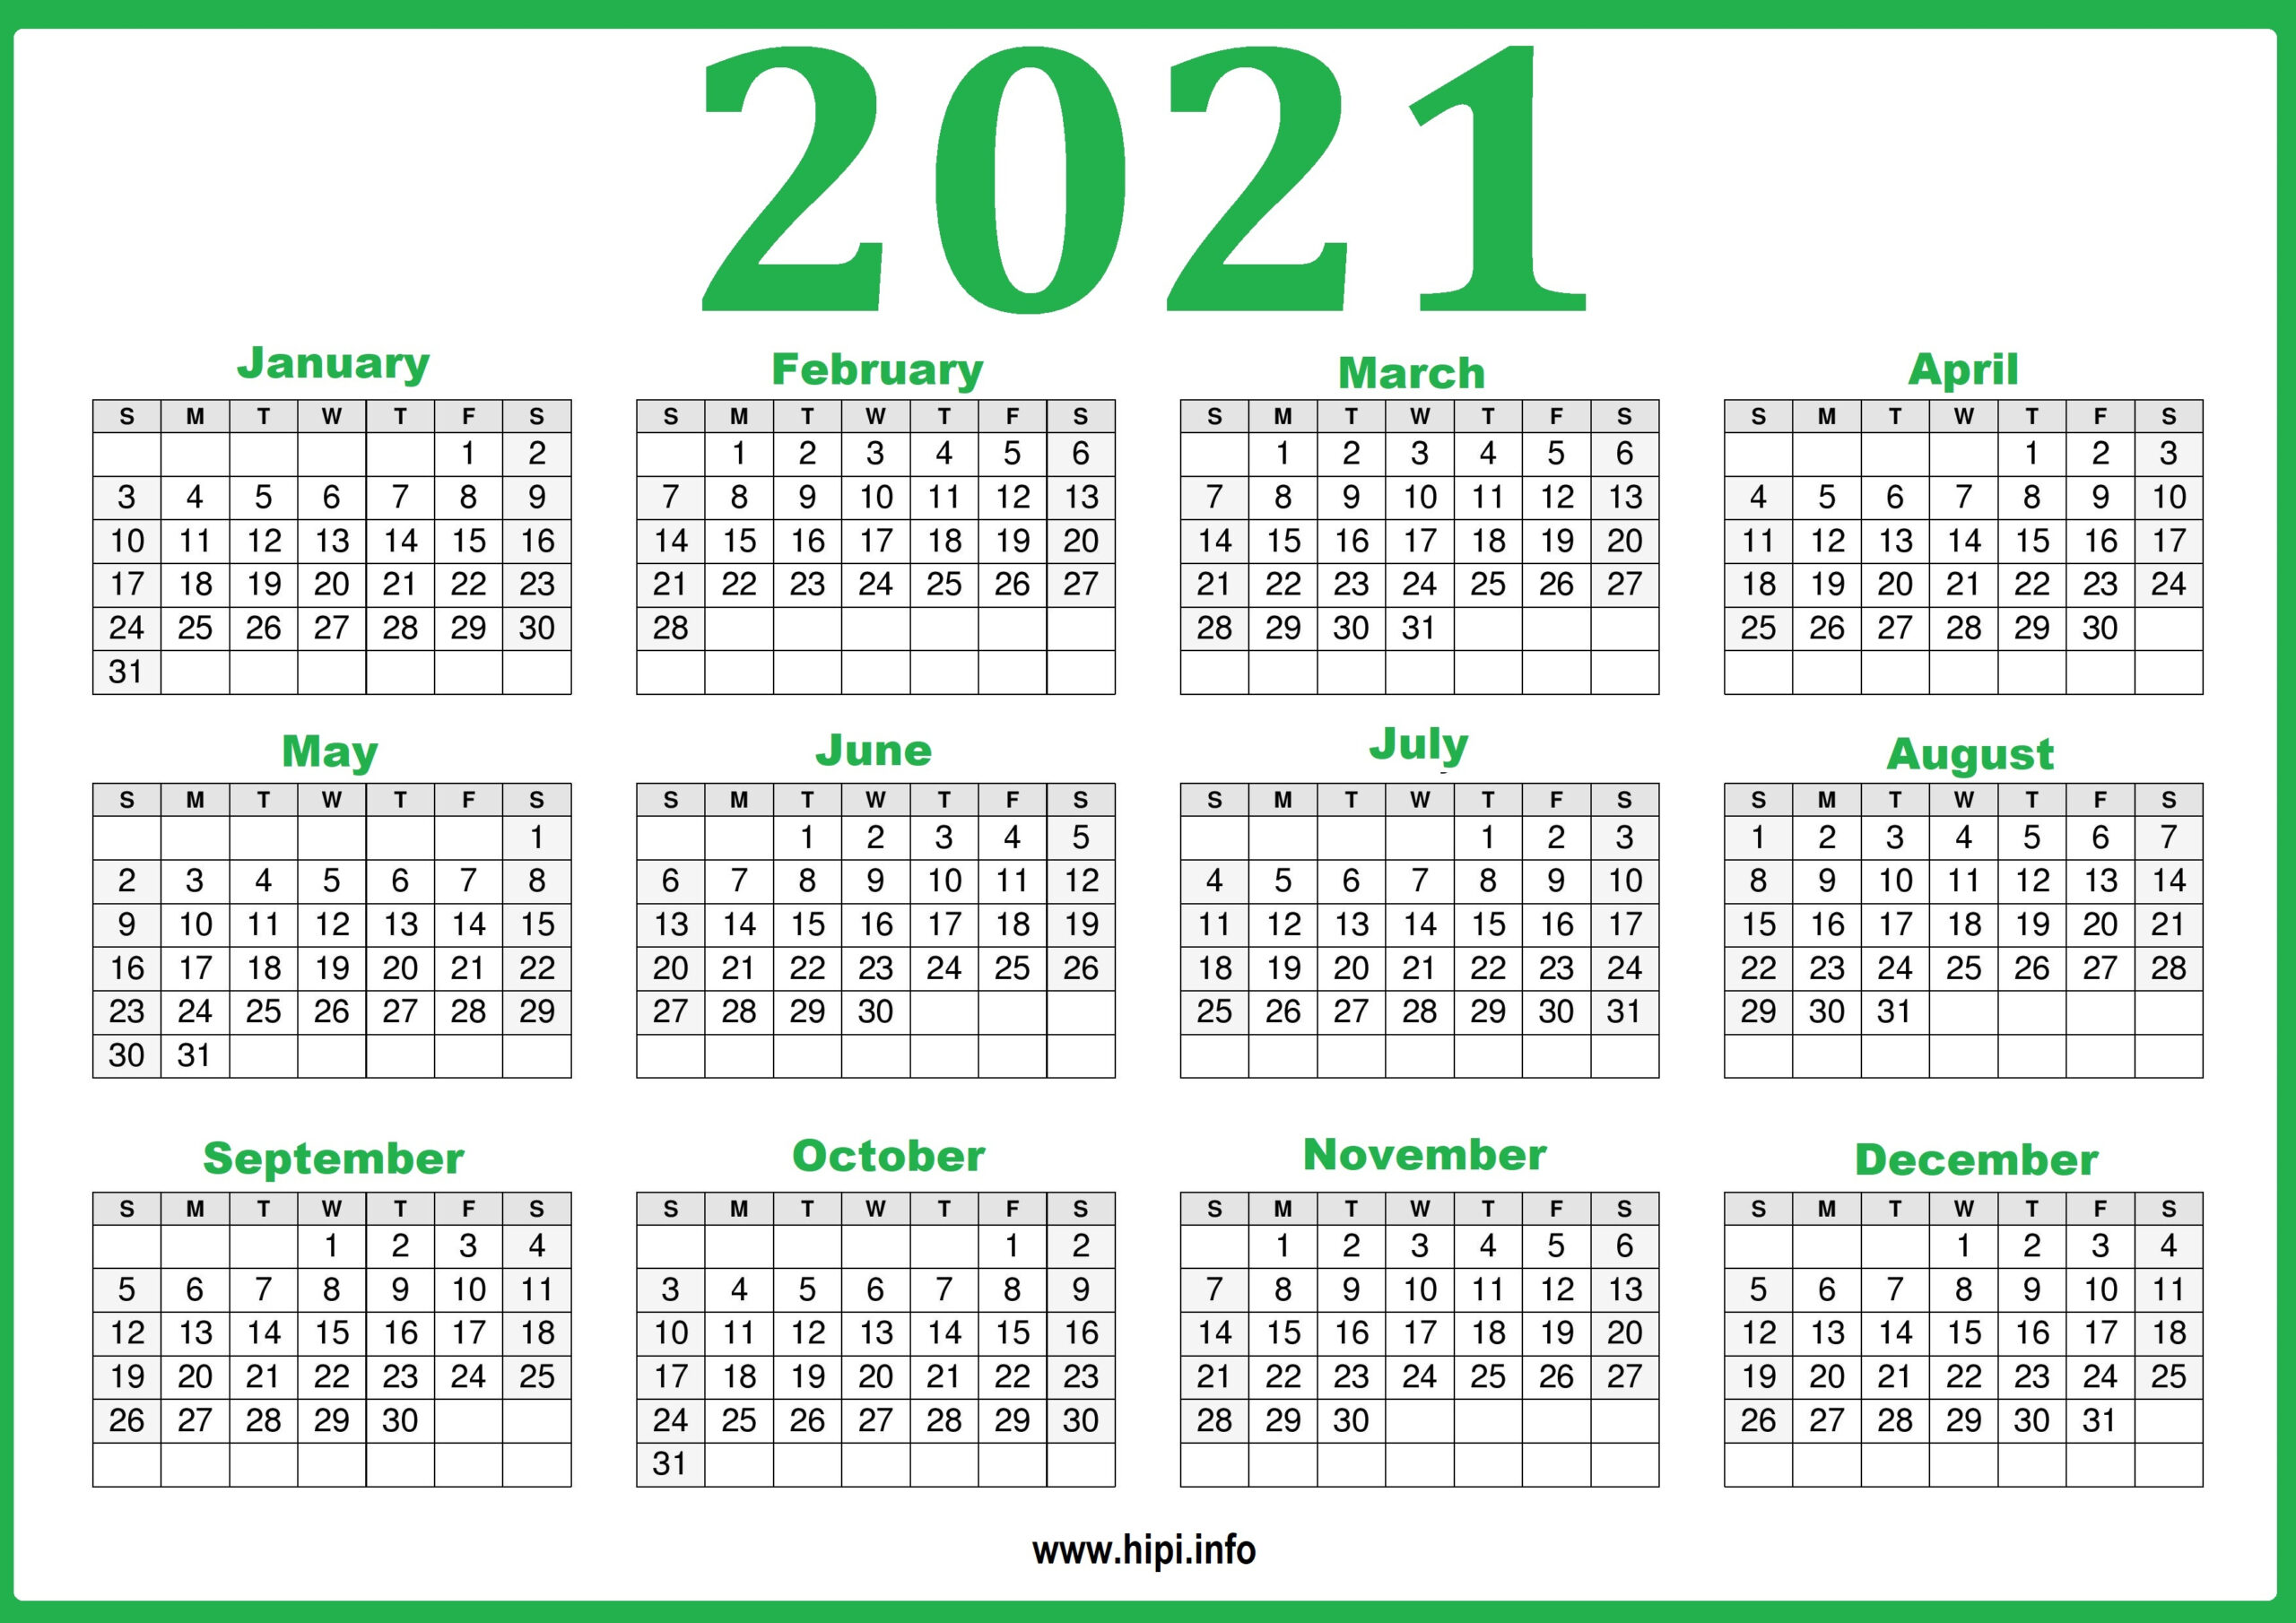 Free Printable 2021 Calendar, Pink And Green - Hipi